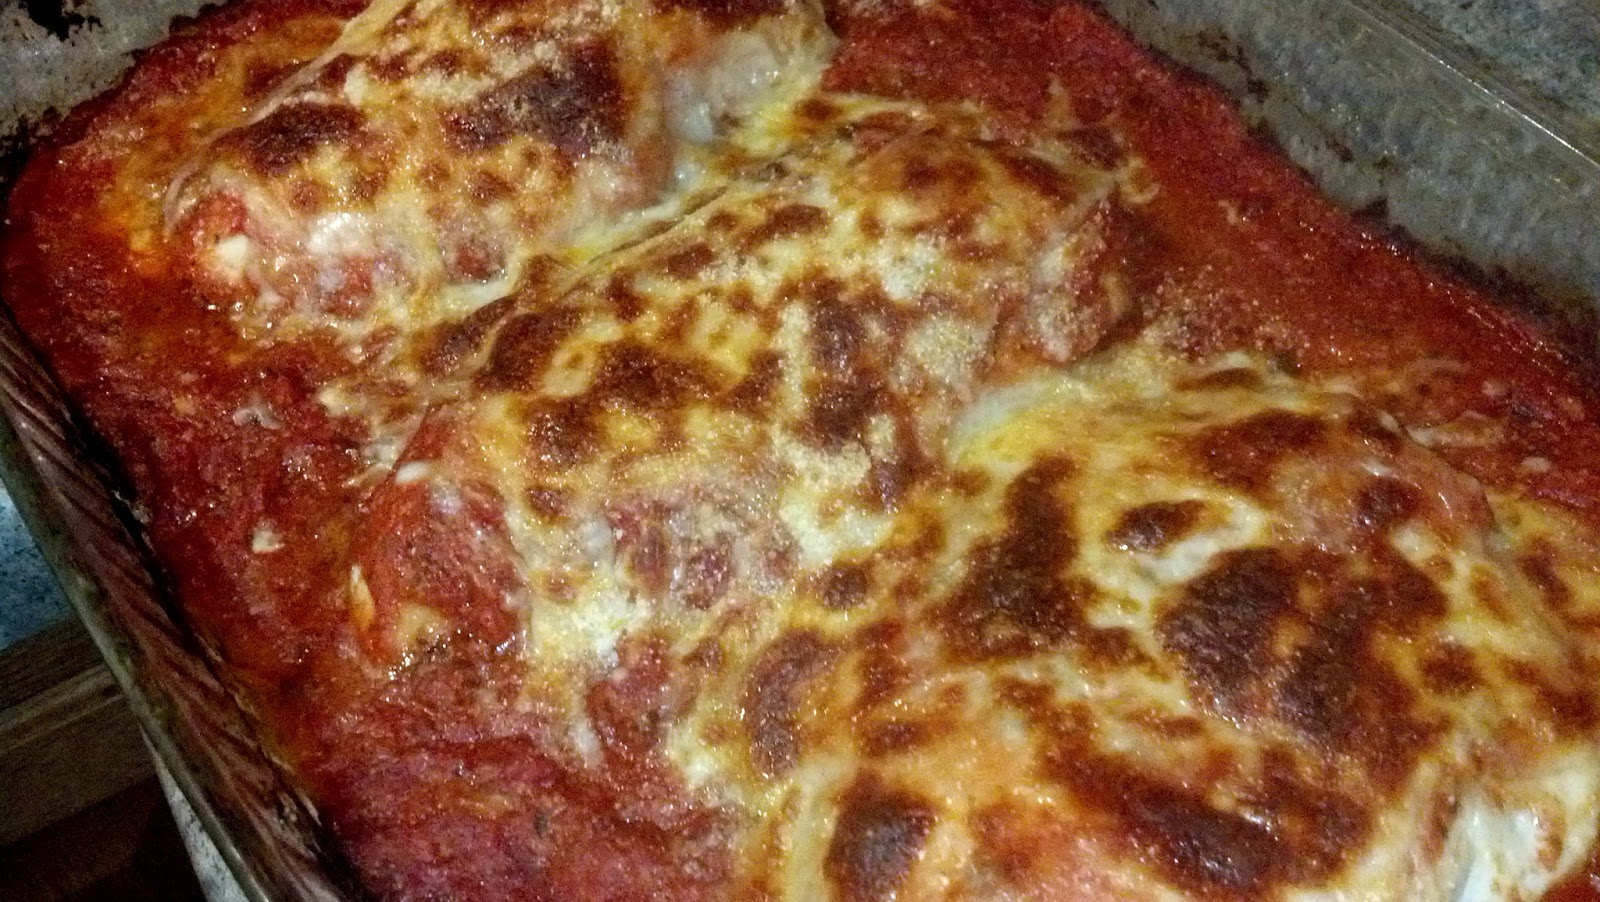 crazylou: Tasty Tuesday--Low-Fat, Easy Baked Chicken Parm